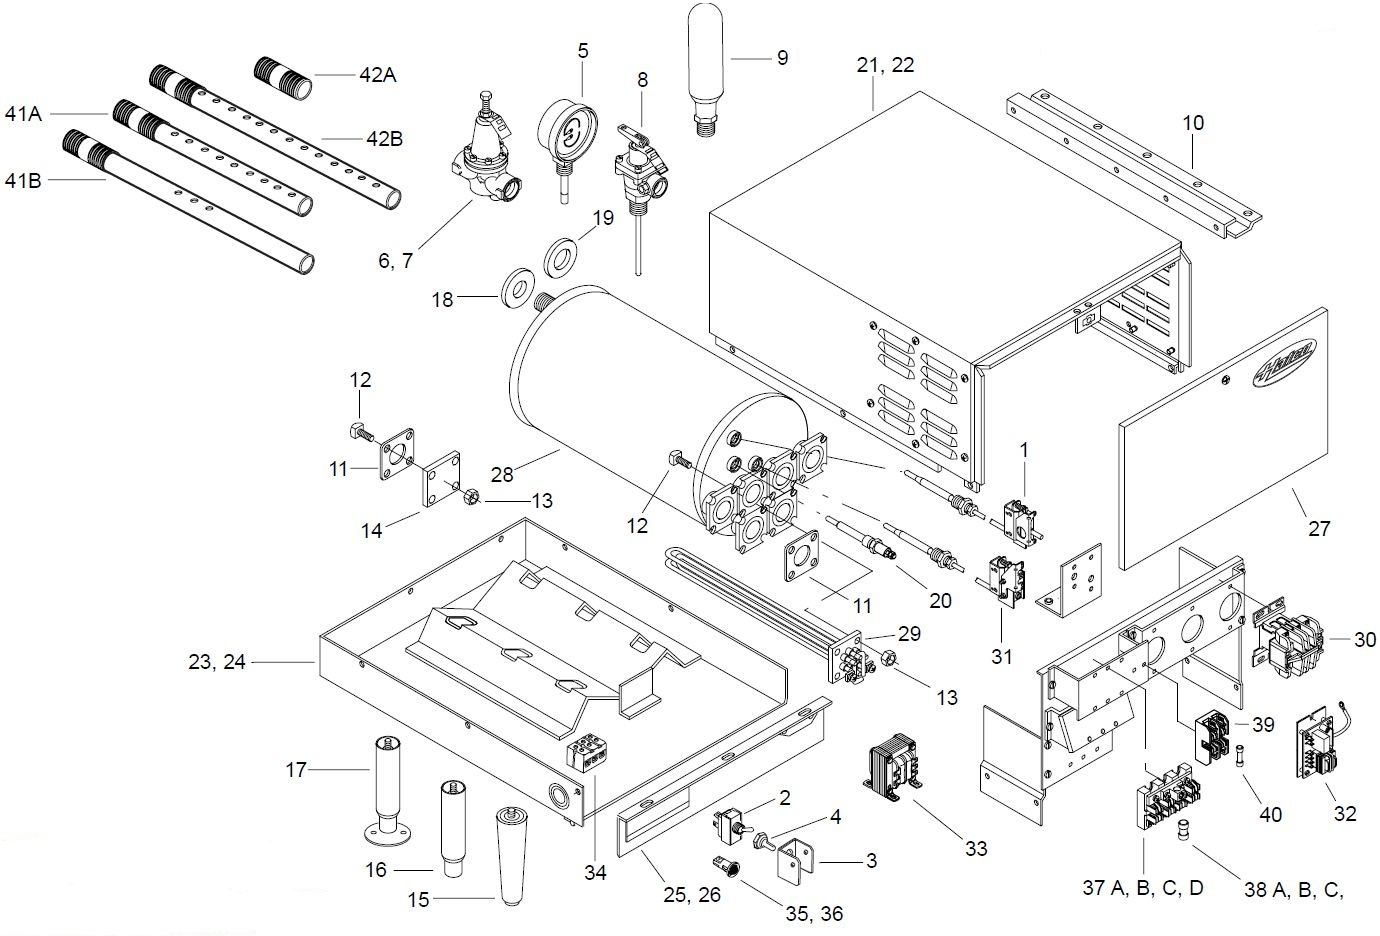 Hatco C-12 Parts Diagram | Parts TownParts Town